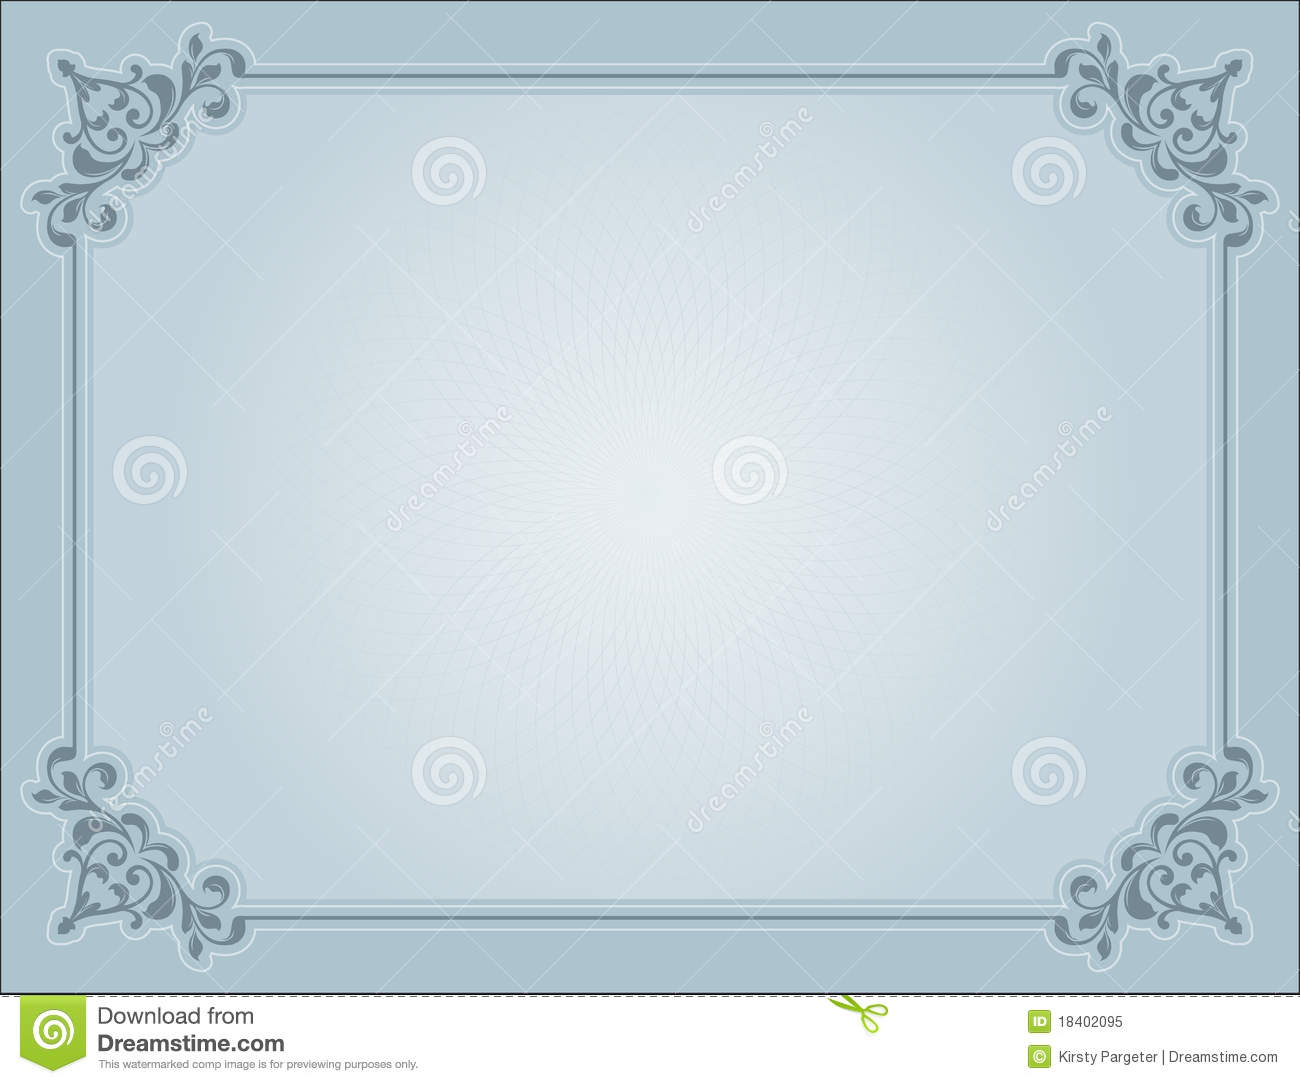 decorative certificate royalty free stock photo image